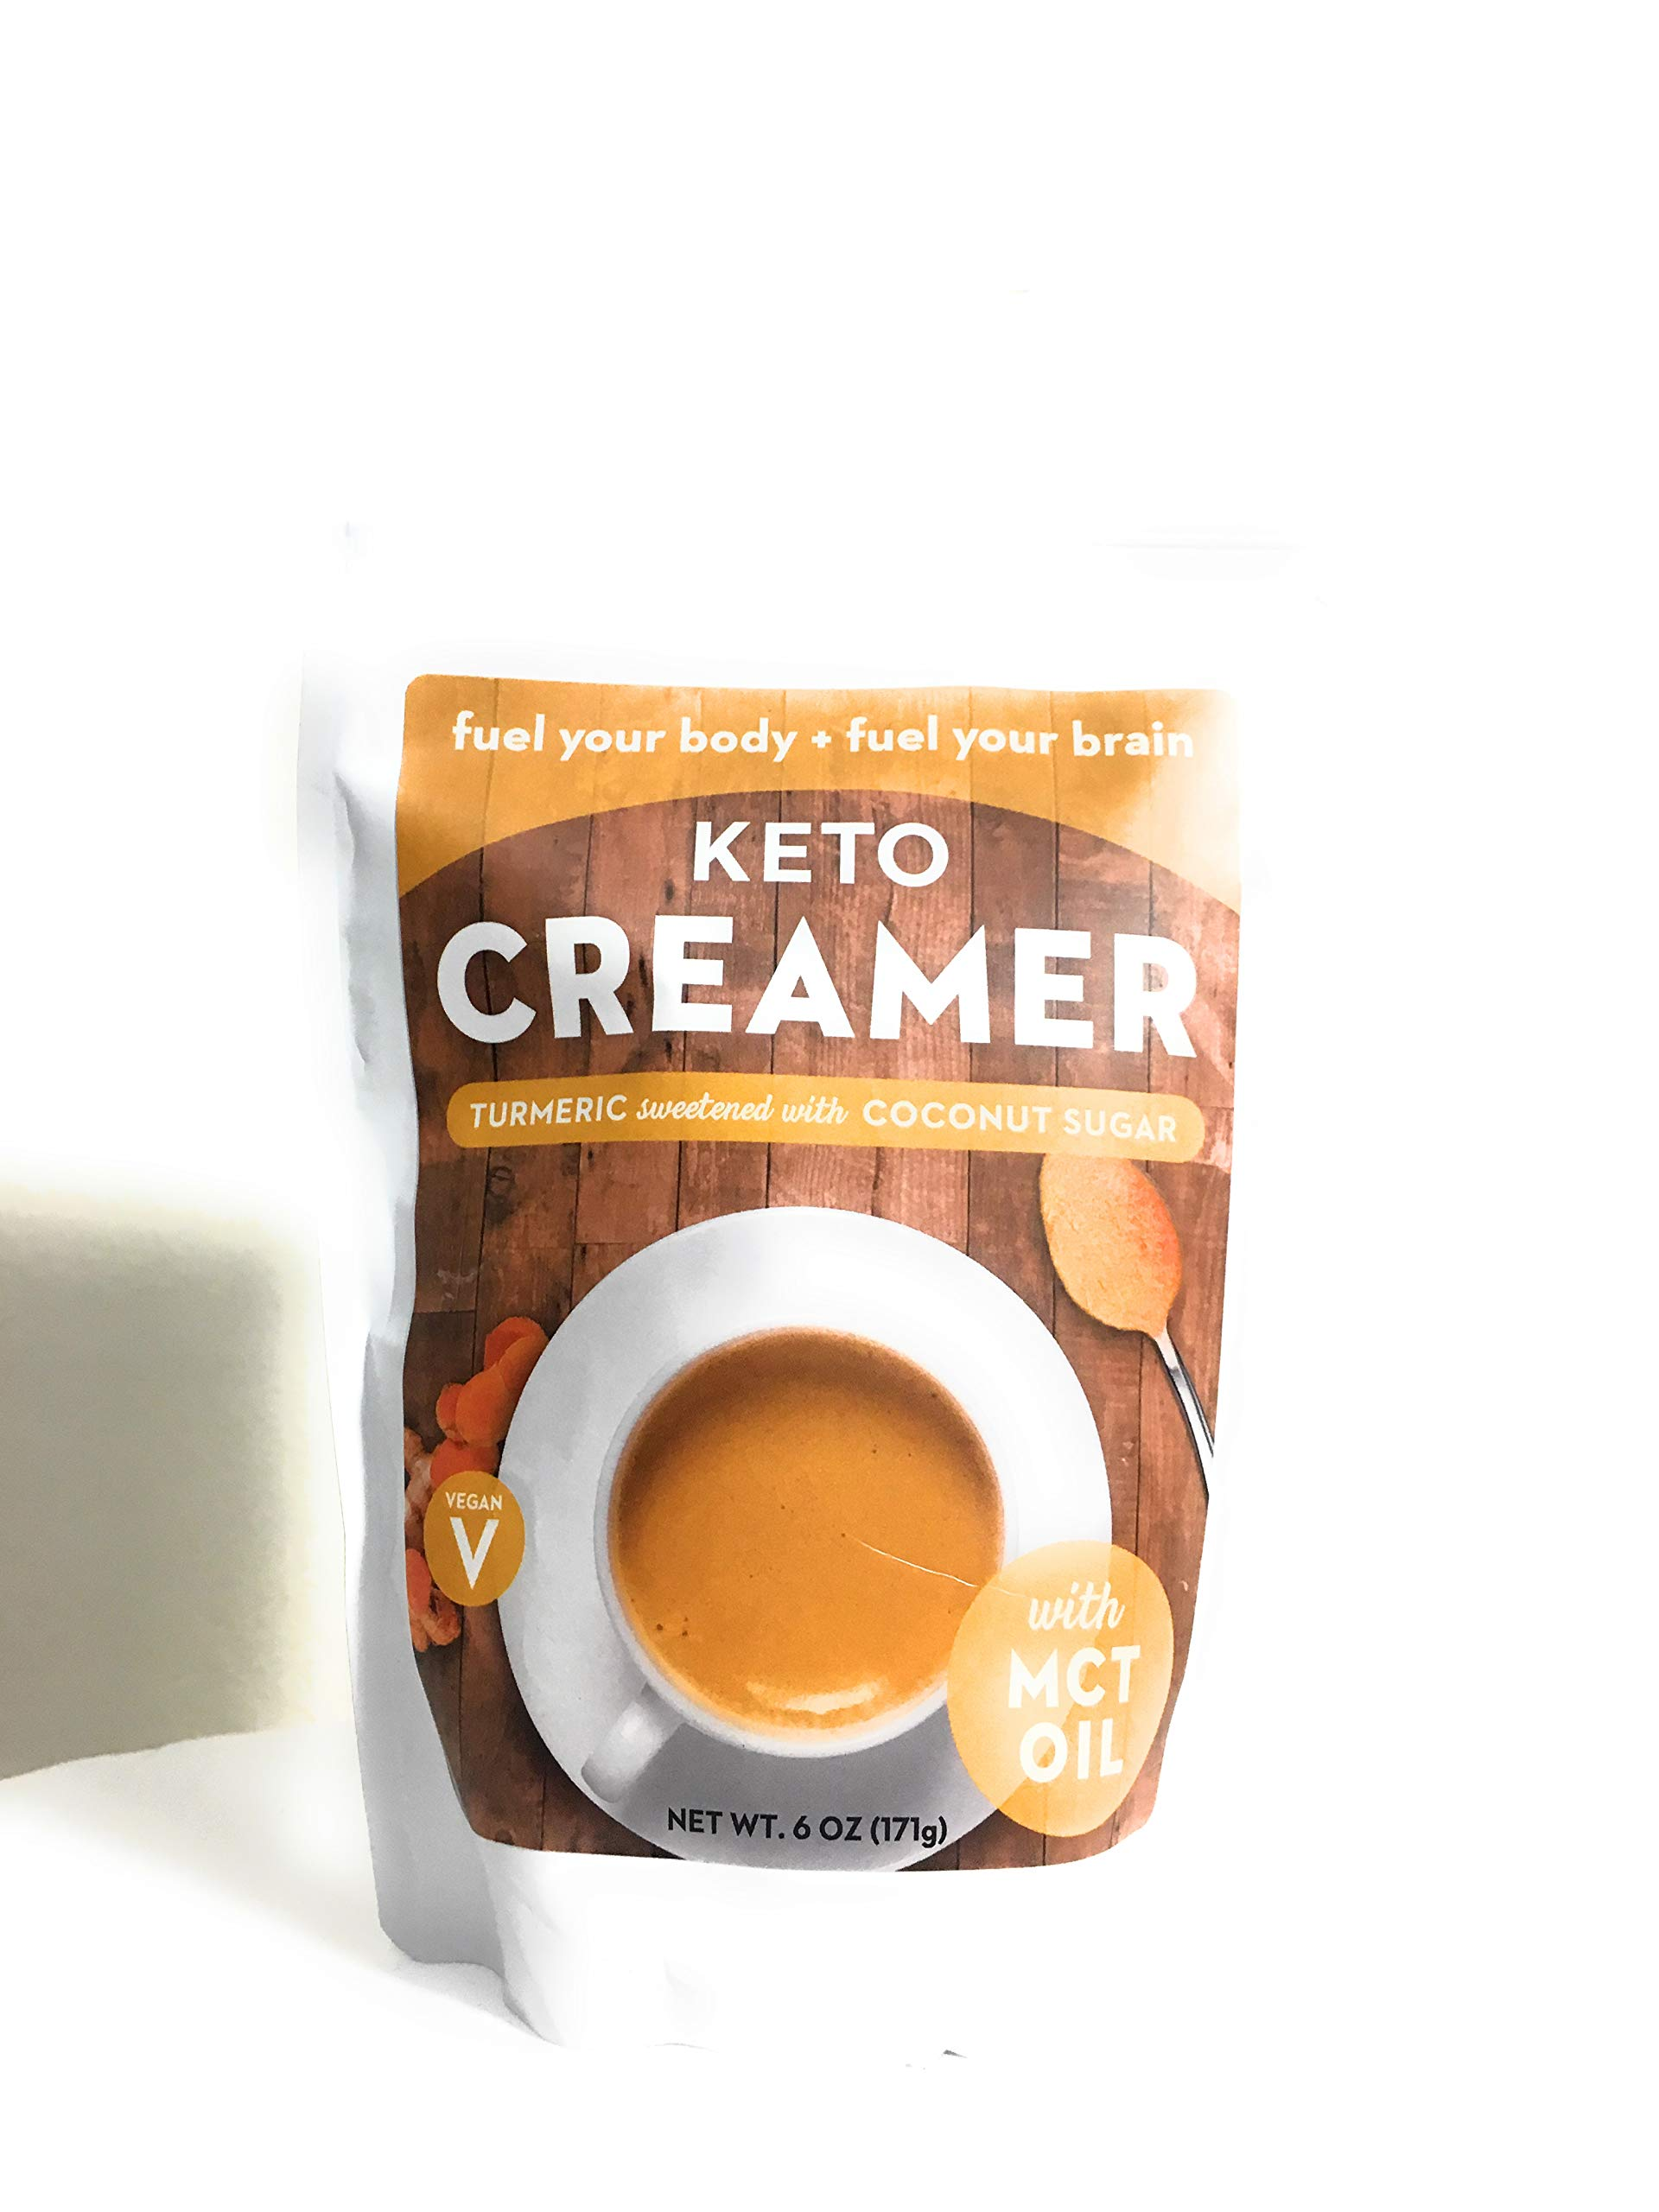 360 Nutrition Keto Creamer with MCT Oil Turmeric Sweetened with Coconut Sugar by 360 Nutrition (Image #1)